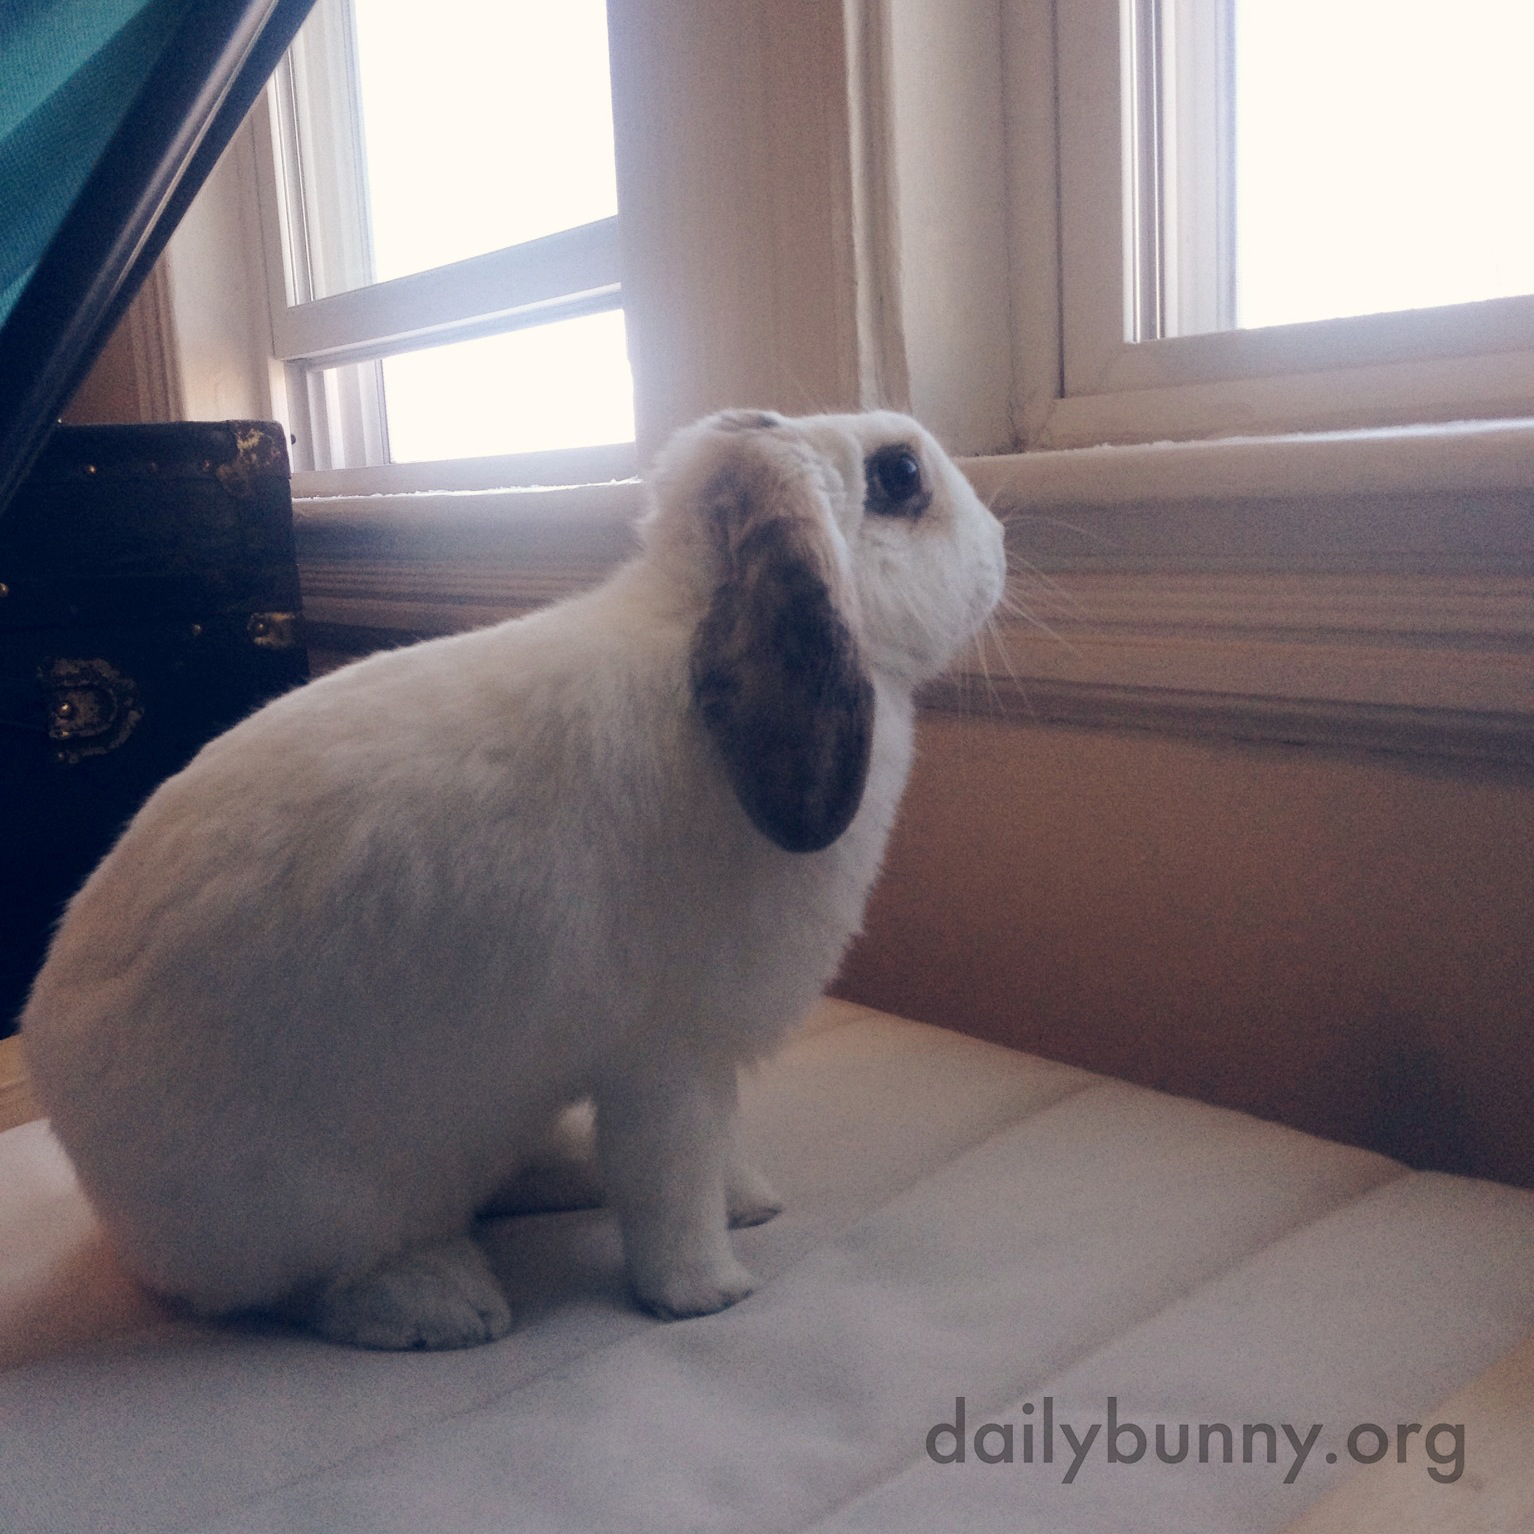 Bunny Is Curious About What's on the Other Side of the Window 1